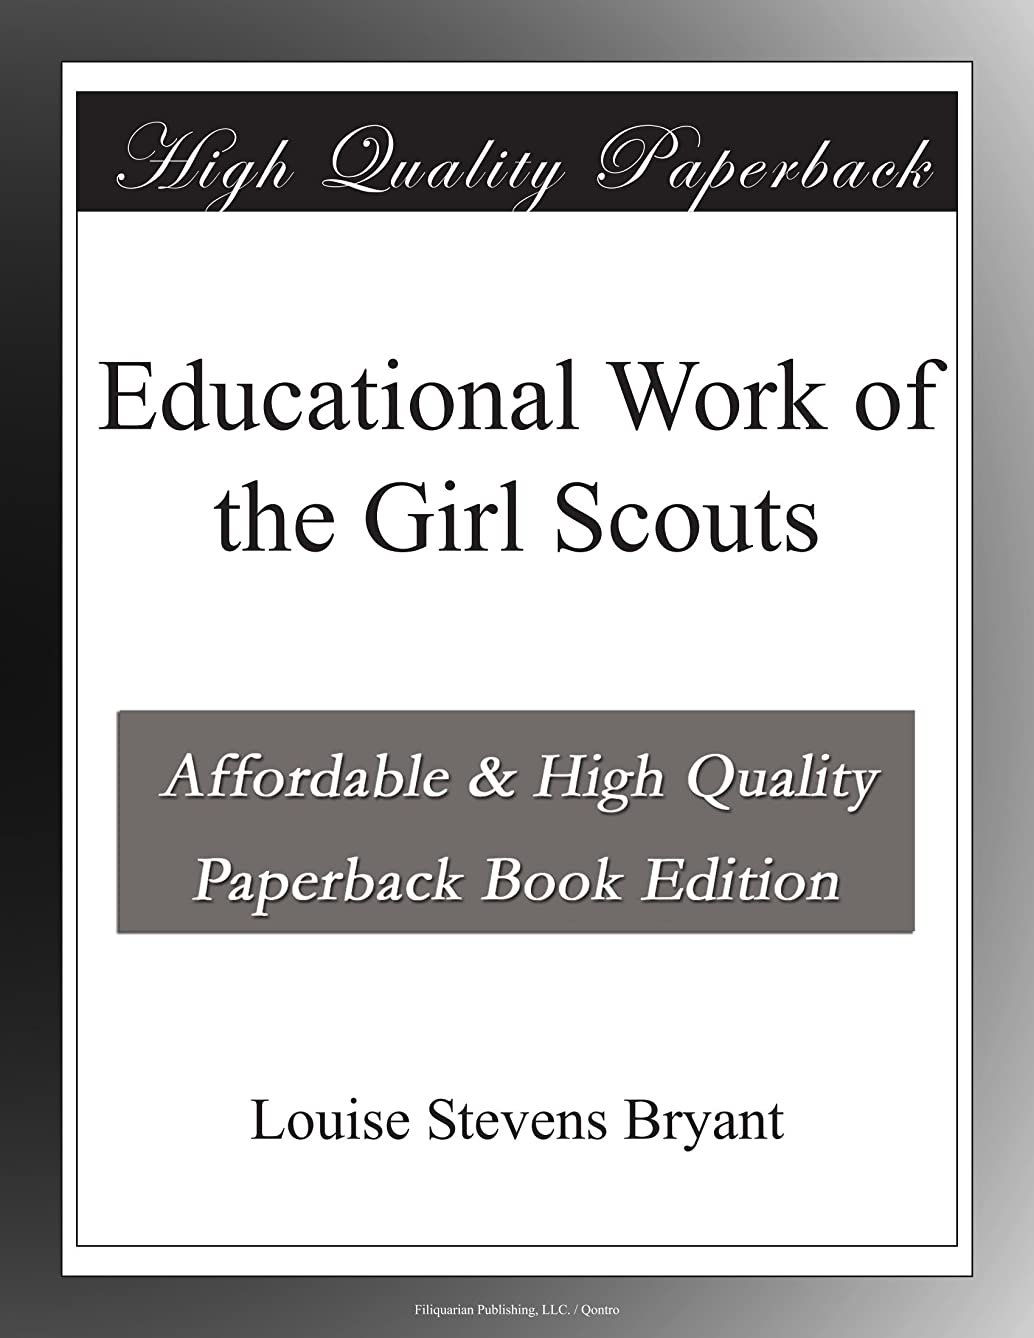 Educational Work of the Girl Scouts